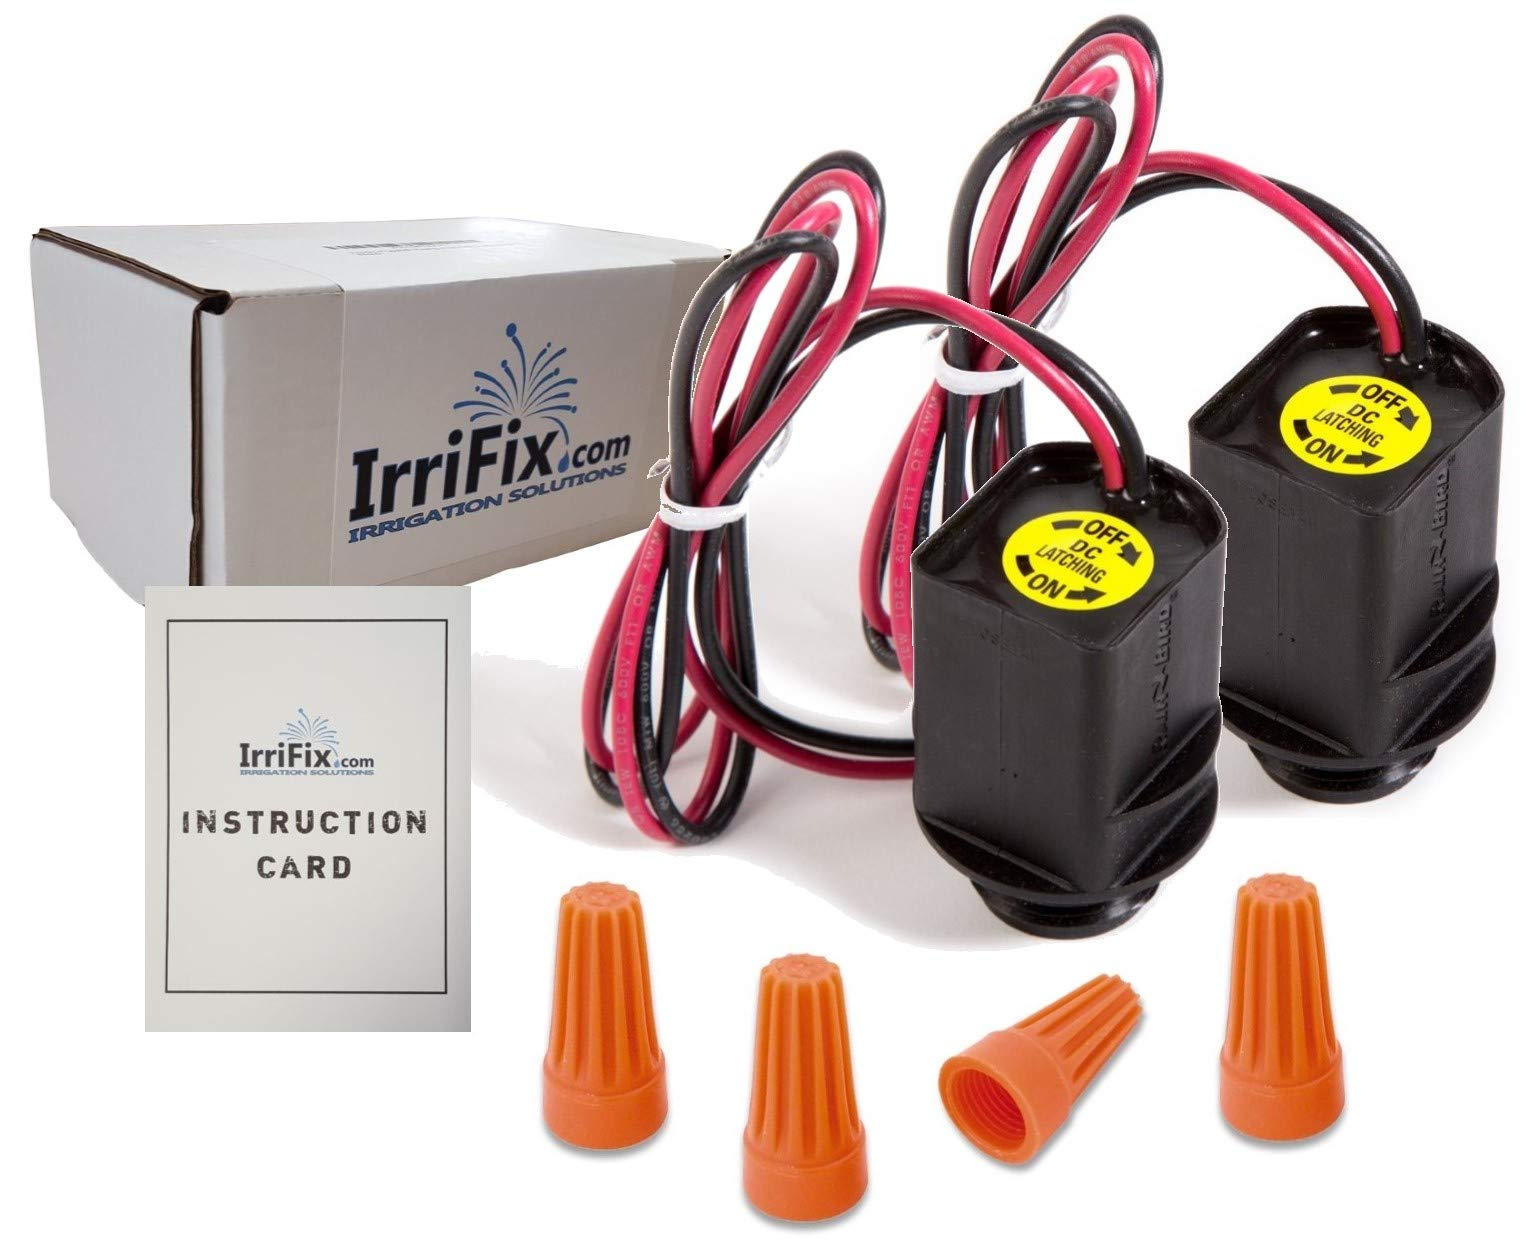 IrriFix Box Set - 2 Pack Rain Bird TBOS Solenoids - RainBird Model TBOSPSOL Potted Latching DC Power Solenoids - Complete with Wire Connectors and Instruction Card by IrriFix